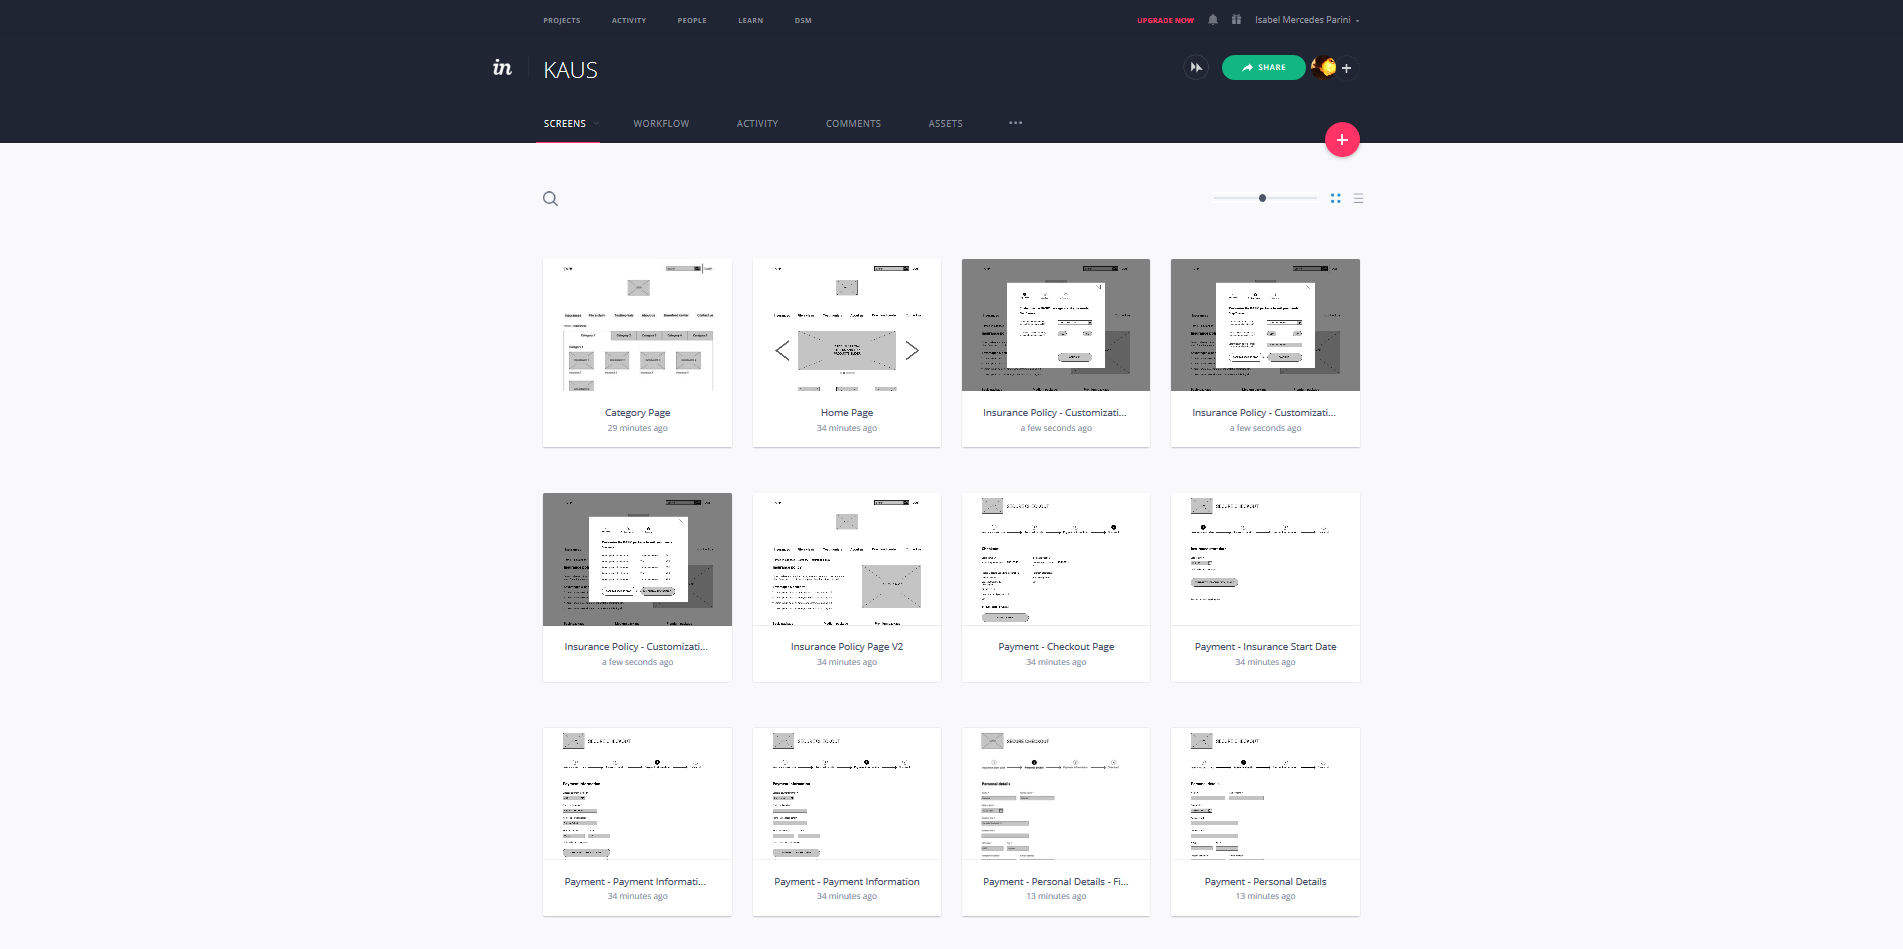 KAUS_Screens_InVision